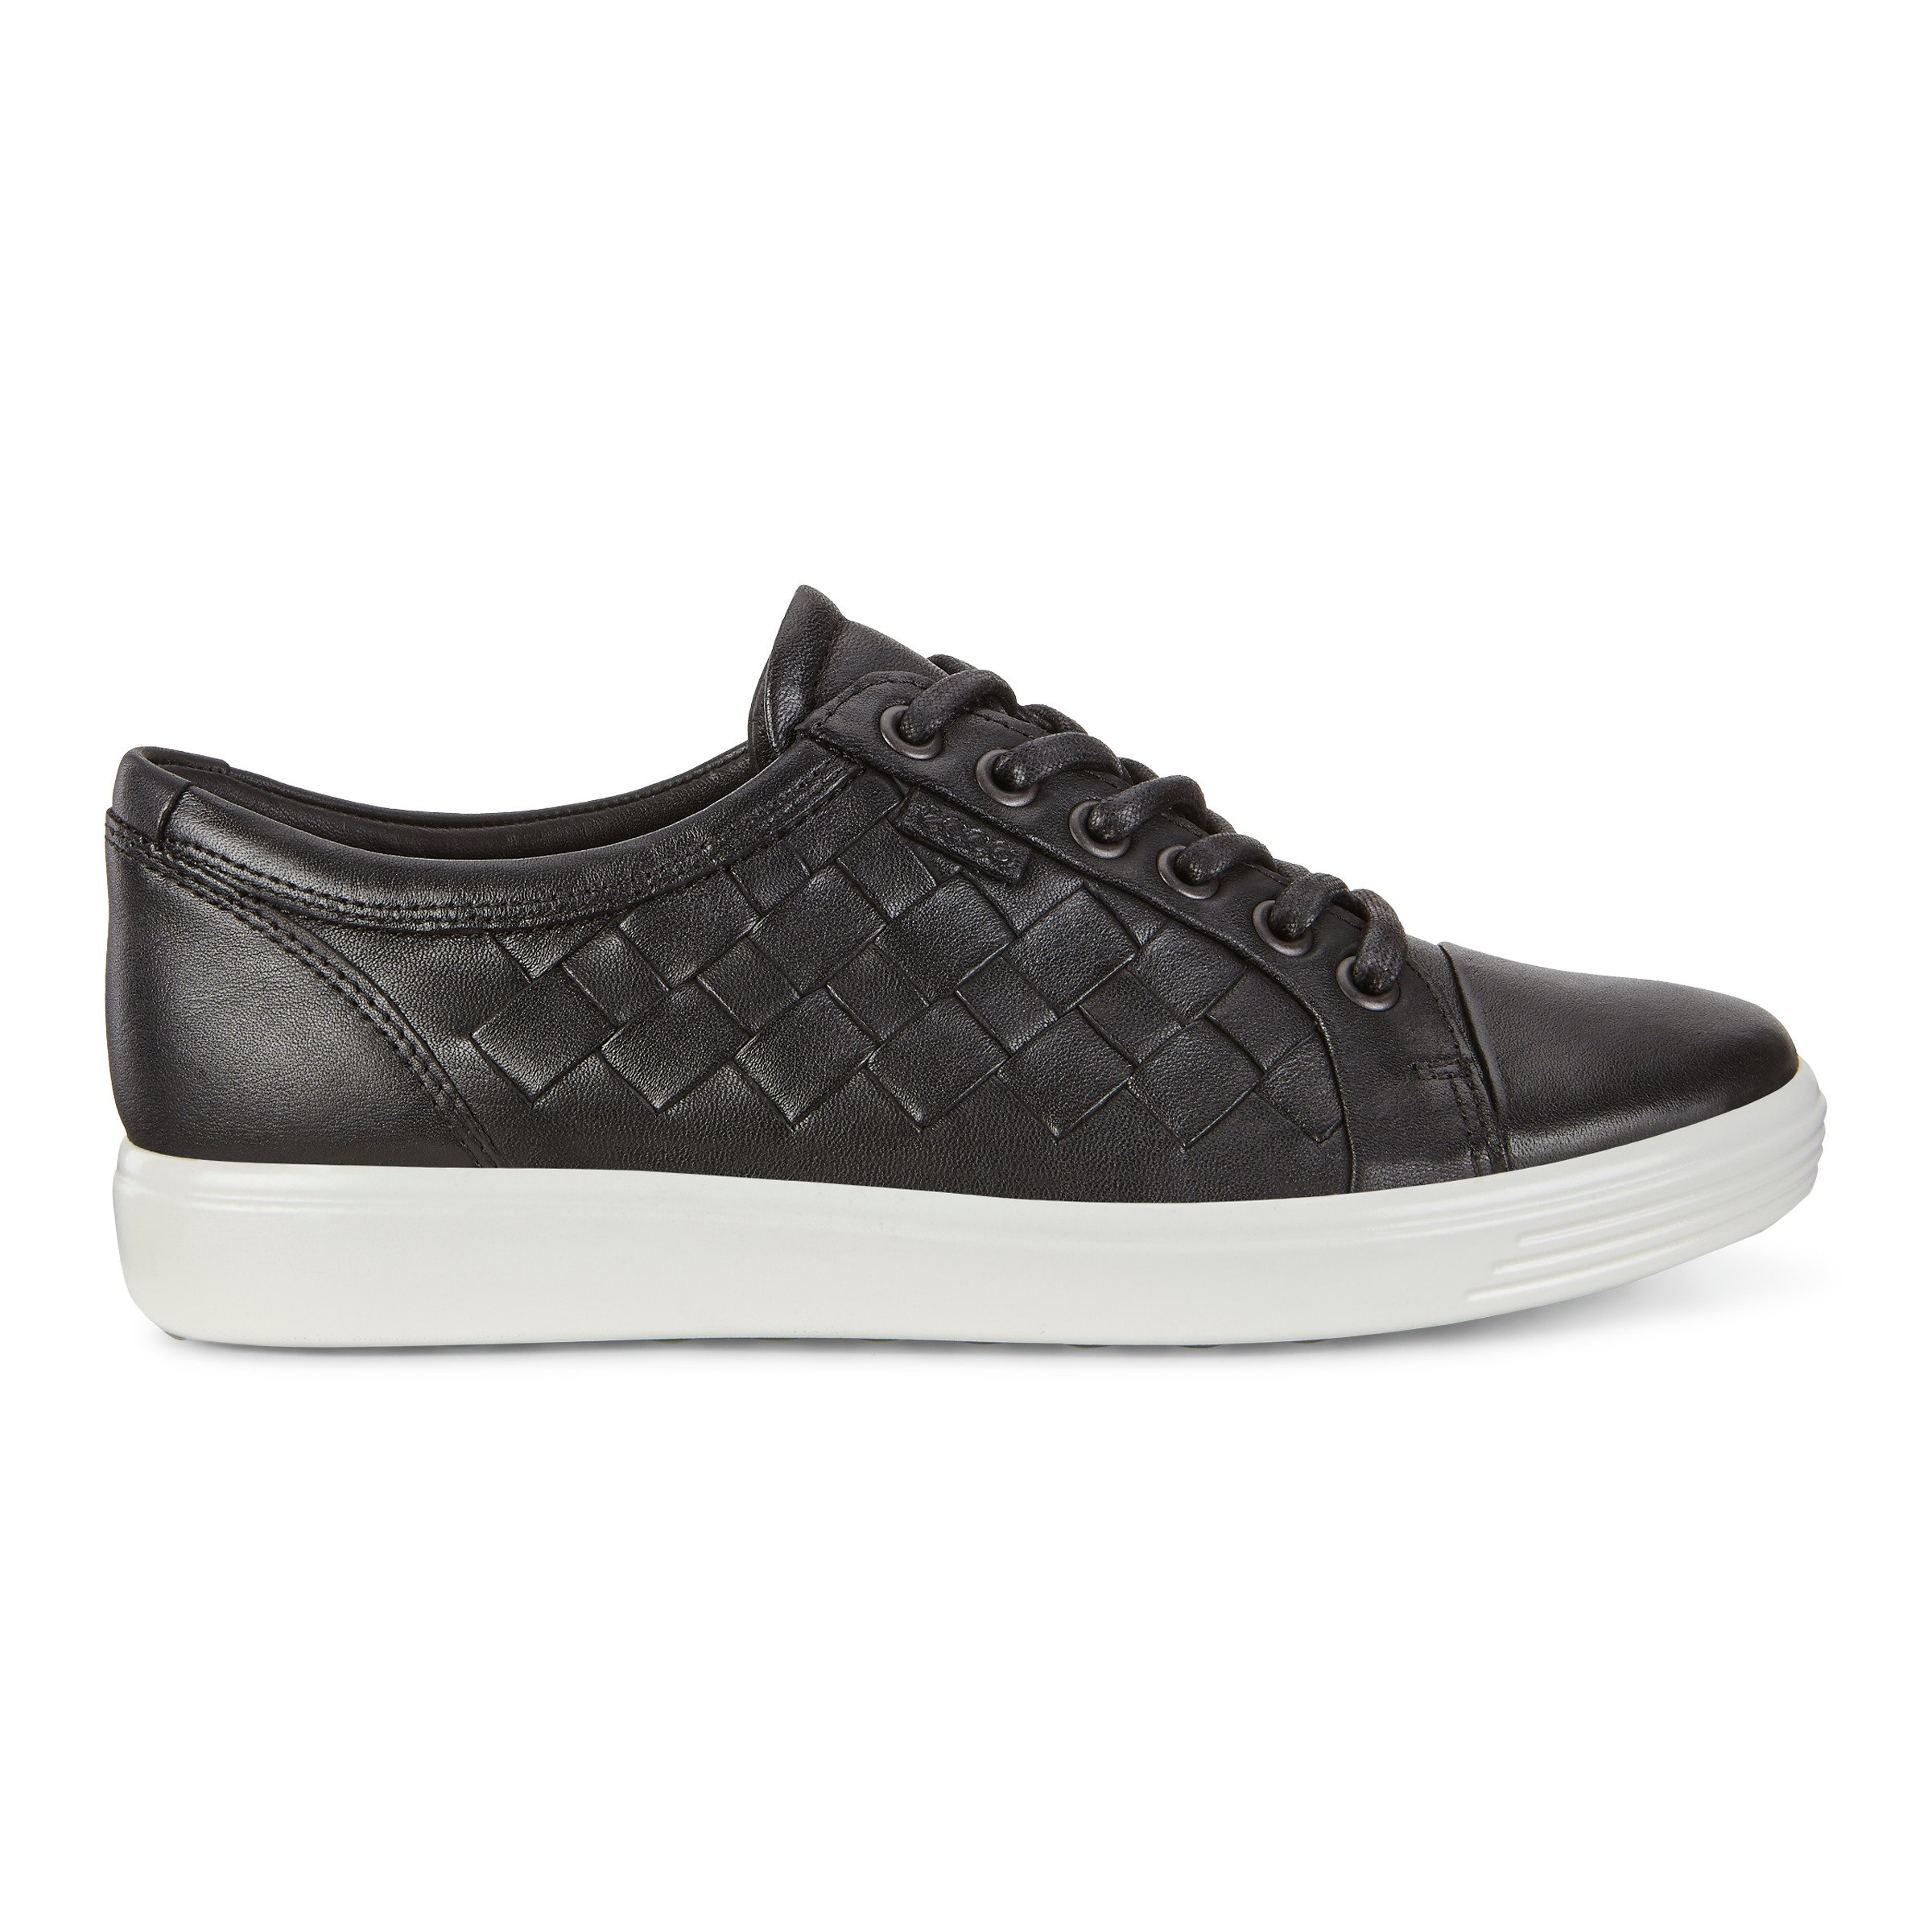 ECCO Womens Soft 7 Woven Tie Sneakers Size 12-12.5 Black